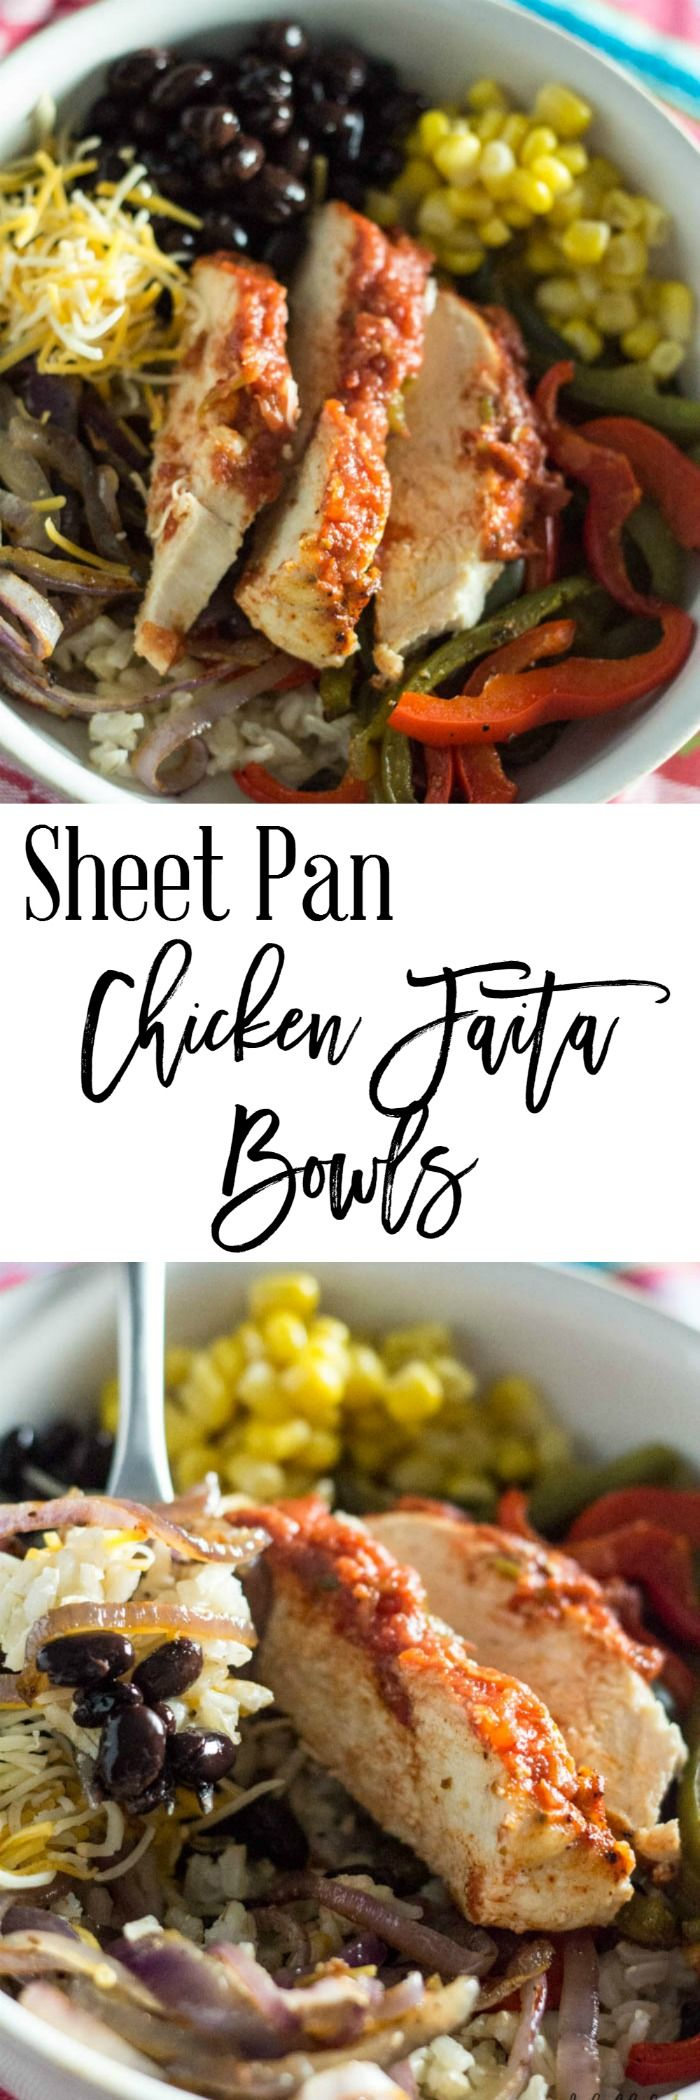 This easy sheet pan chicken fajita bowl recipe is perfect for your family. It's easy to make and only 6 SmartPoints per serving on Weight Watchers.